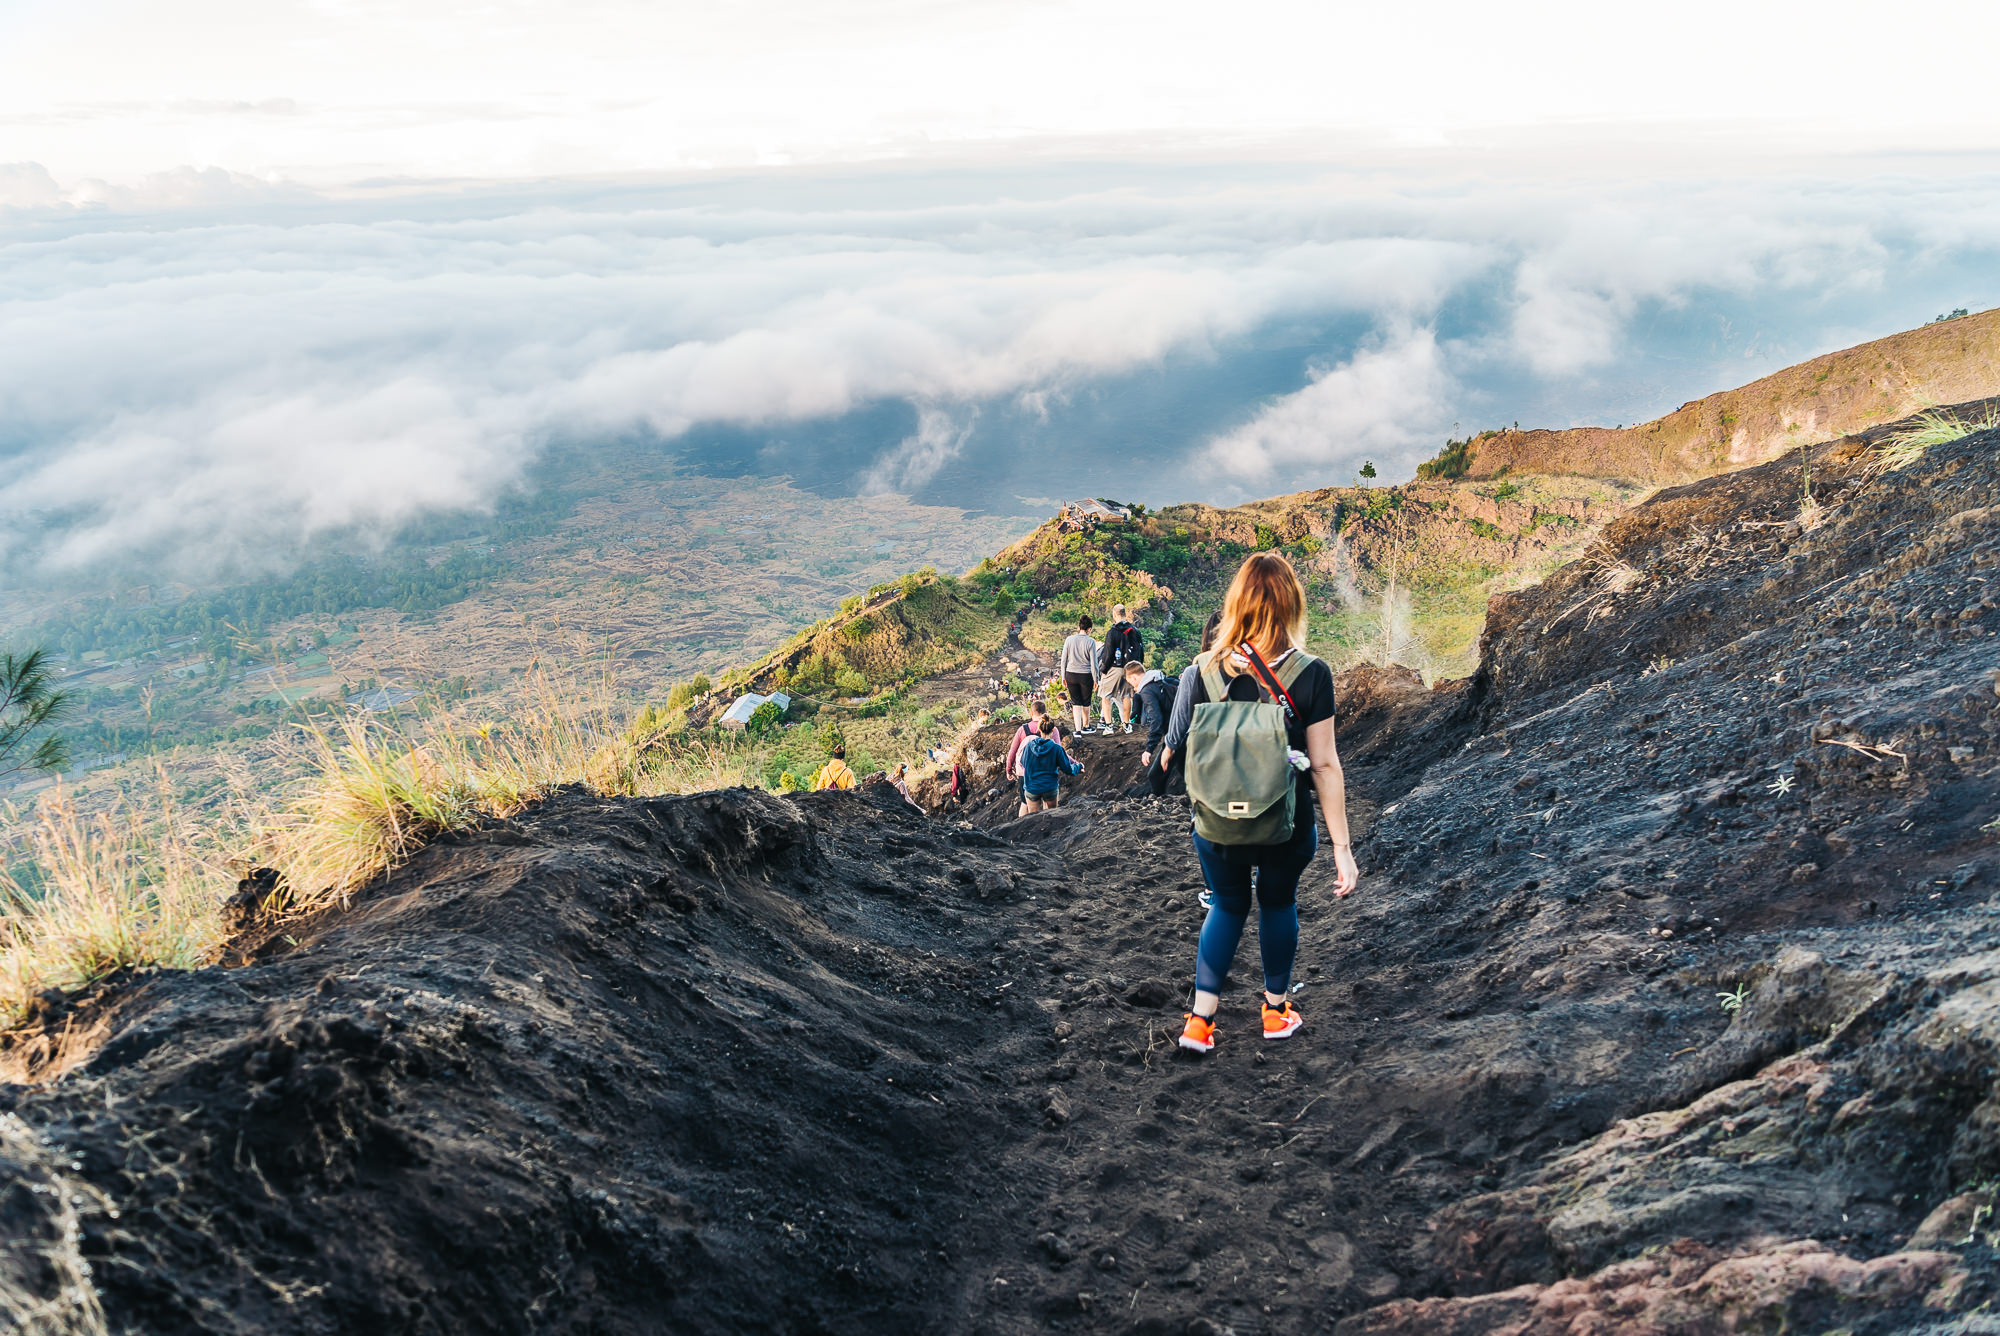 Going down Mount Batur was a bit tricky too as you had to get your grip on the loose dirt